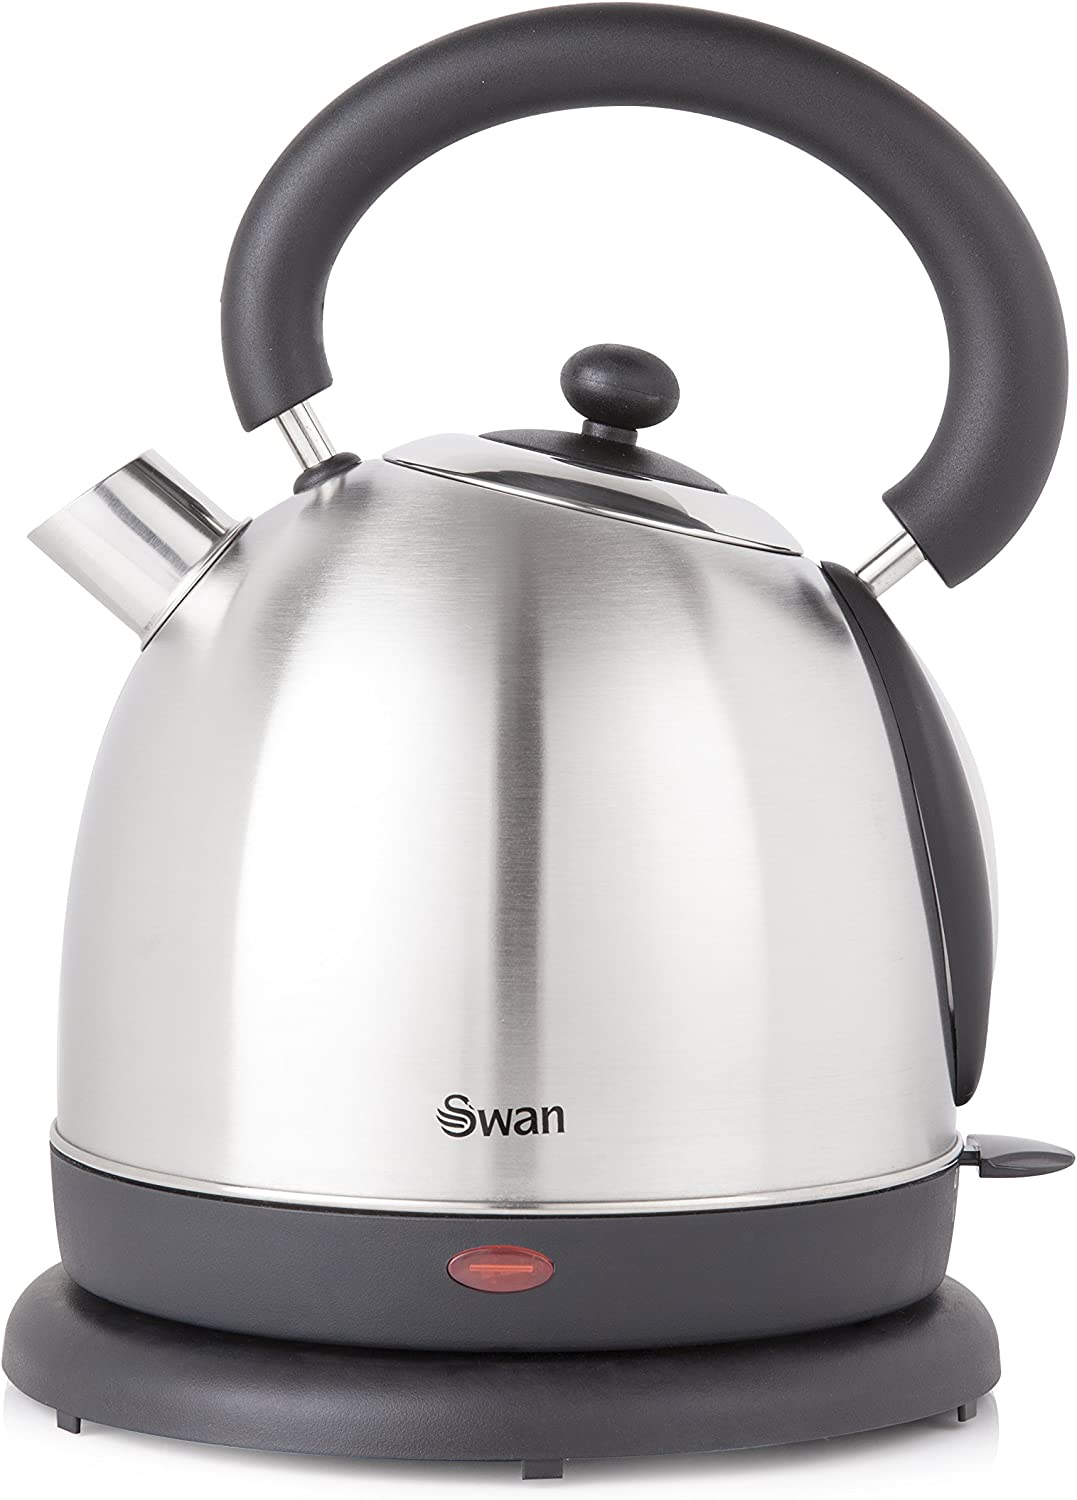 Swan Traditional Dome Kettle, Cordless